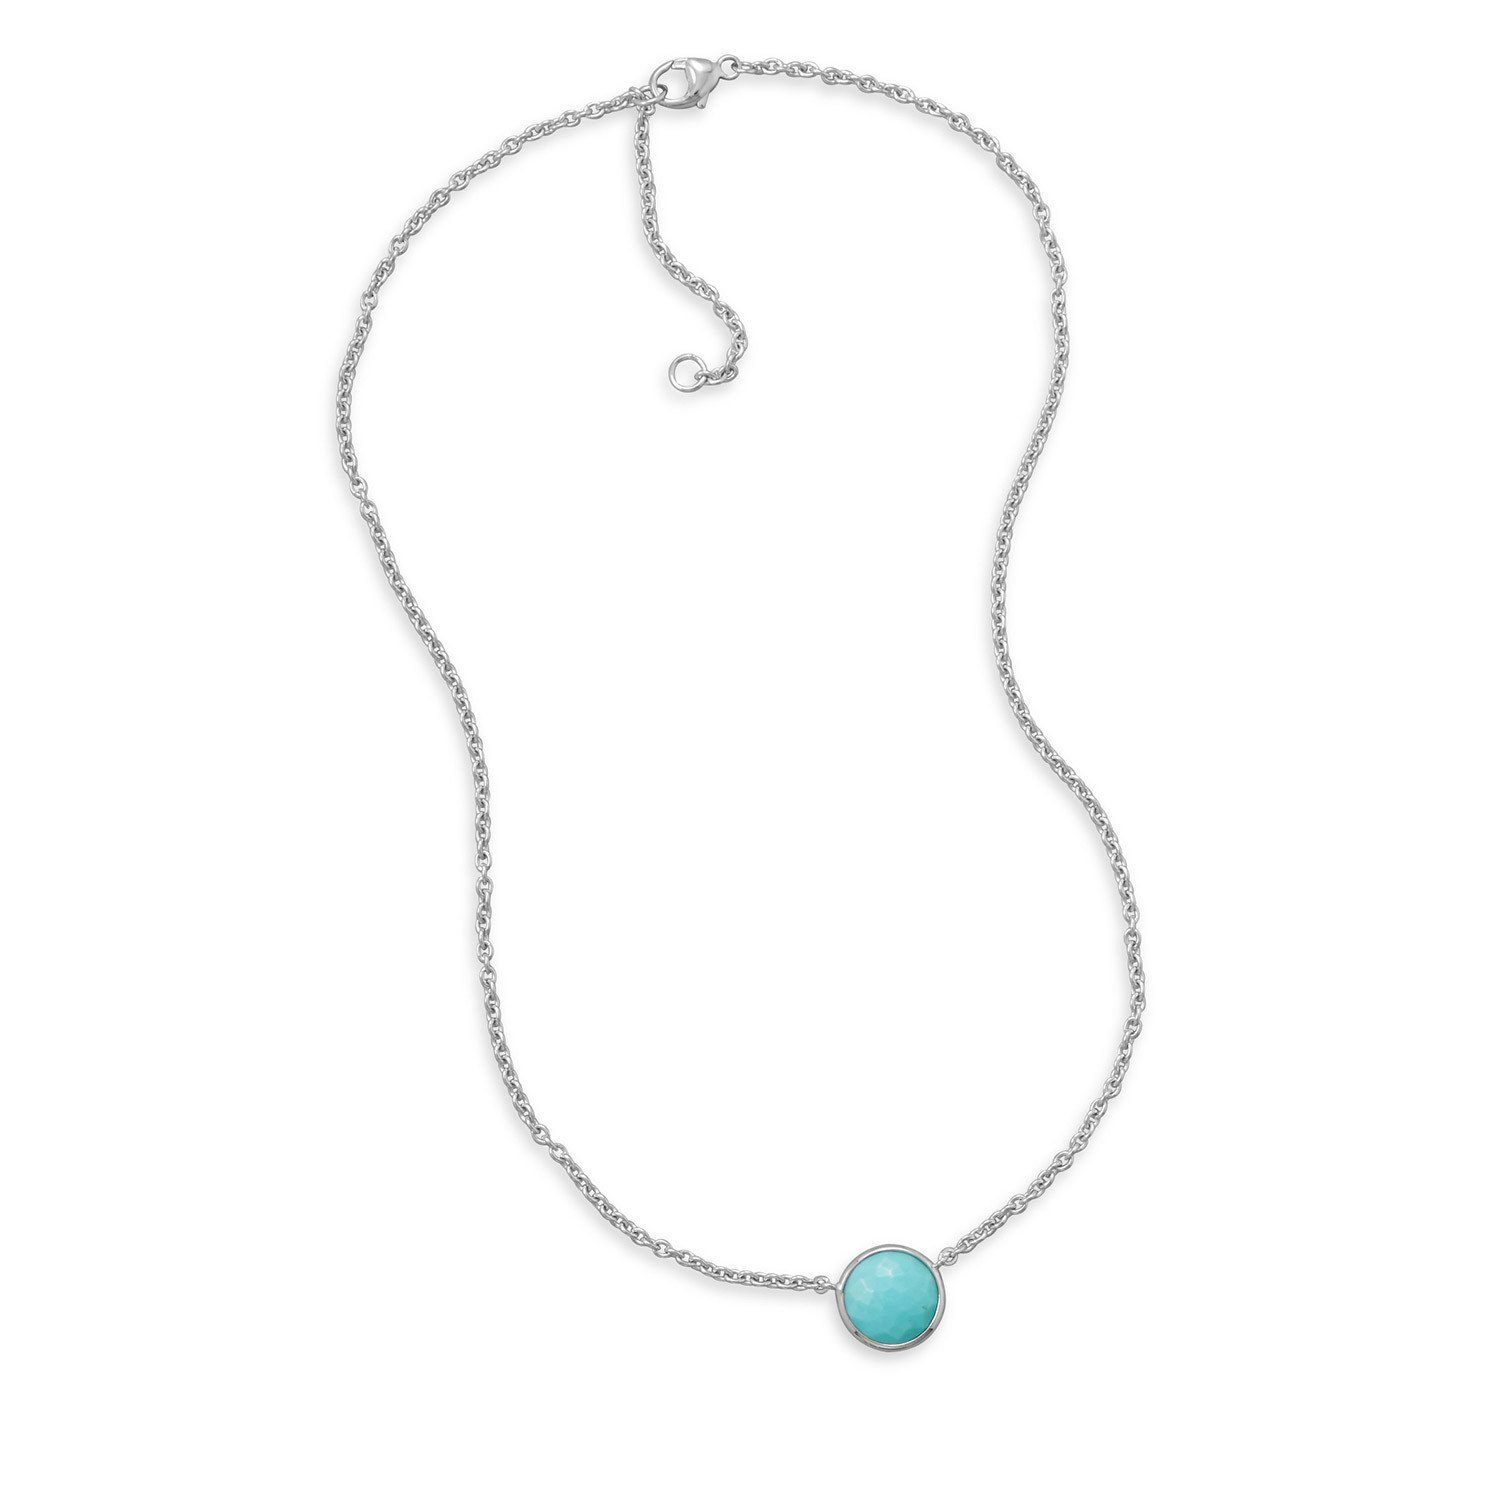 16″ + 2″ Freeform Faceted Turquoise Necklace